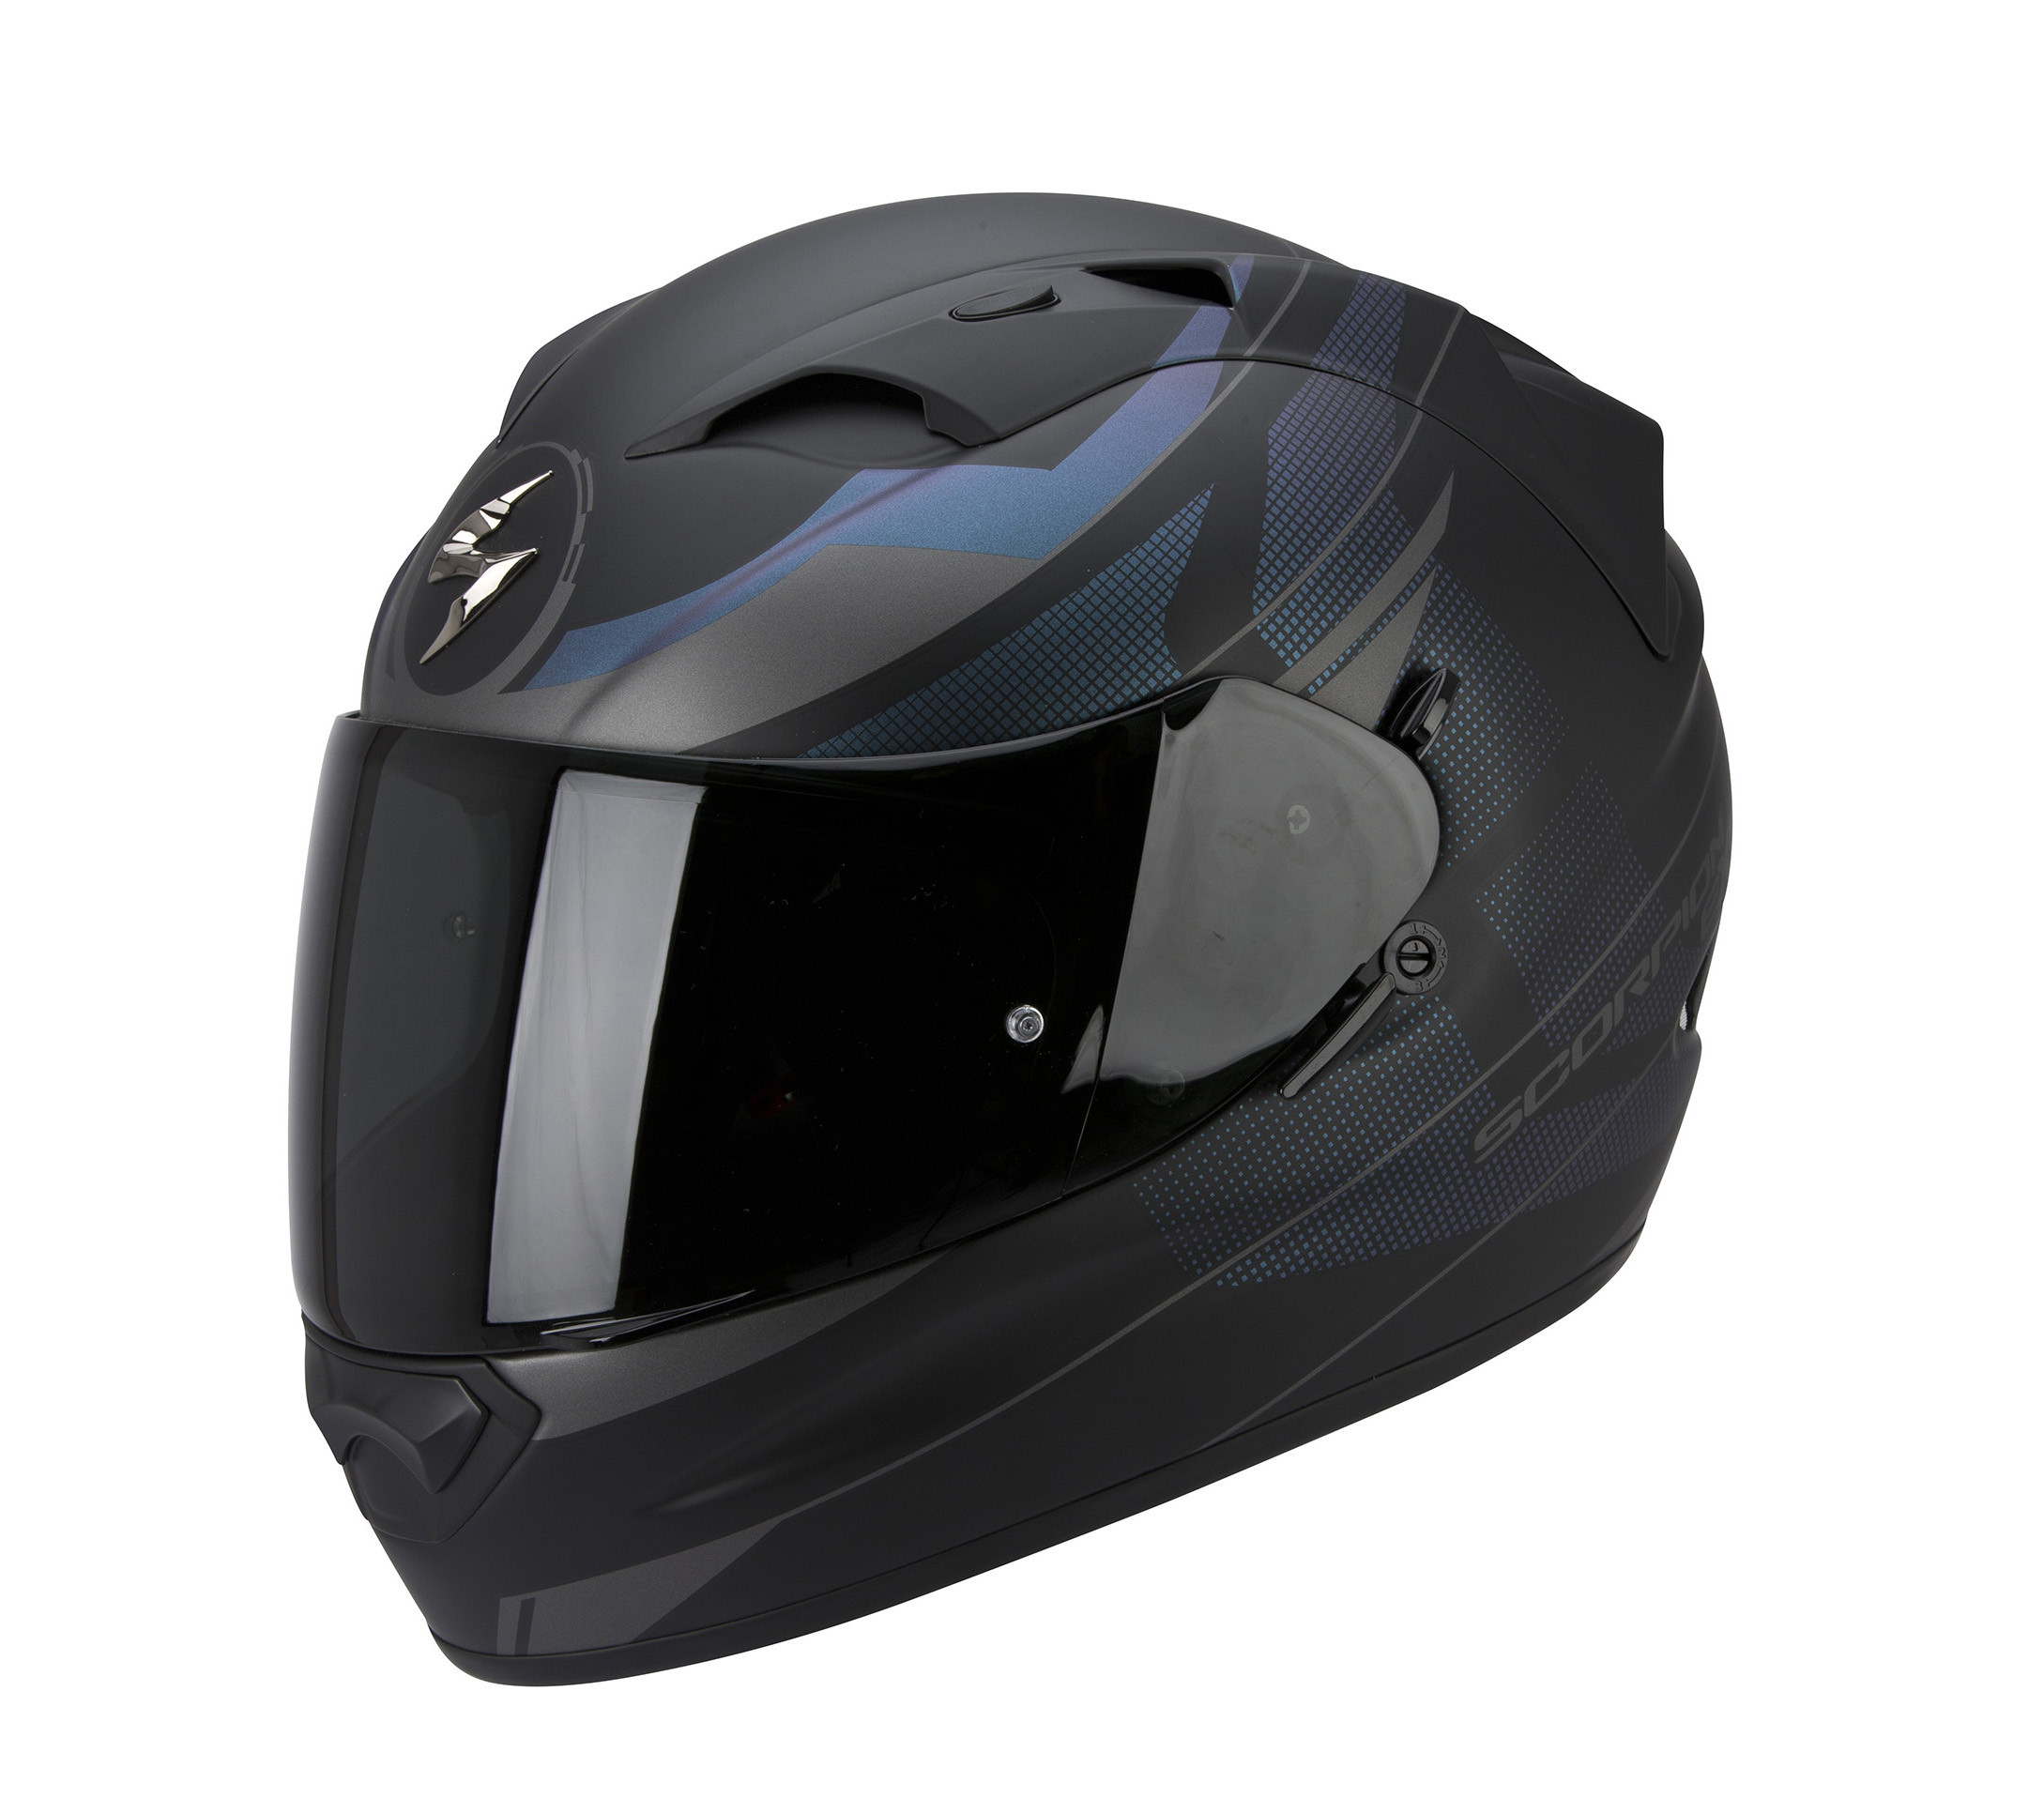 casco integrale scorpion exo 1200 air fulmen in fibra nero. Black Bedroom Furniture Sets. Home Design Ideas